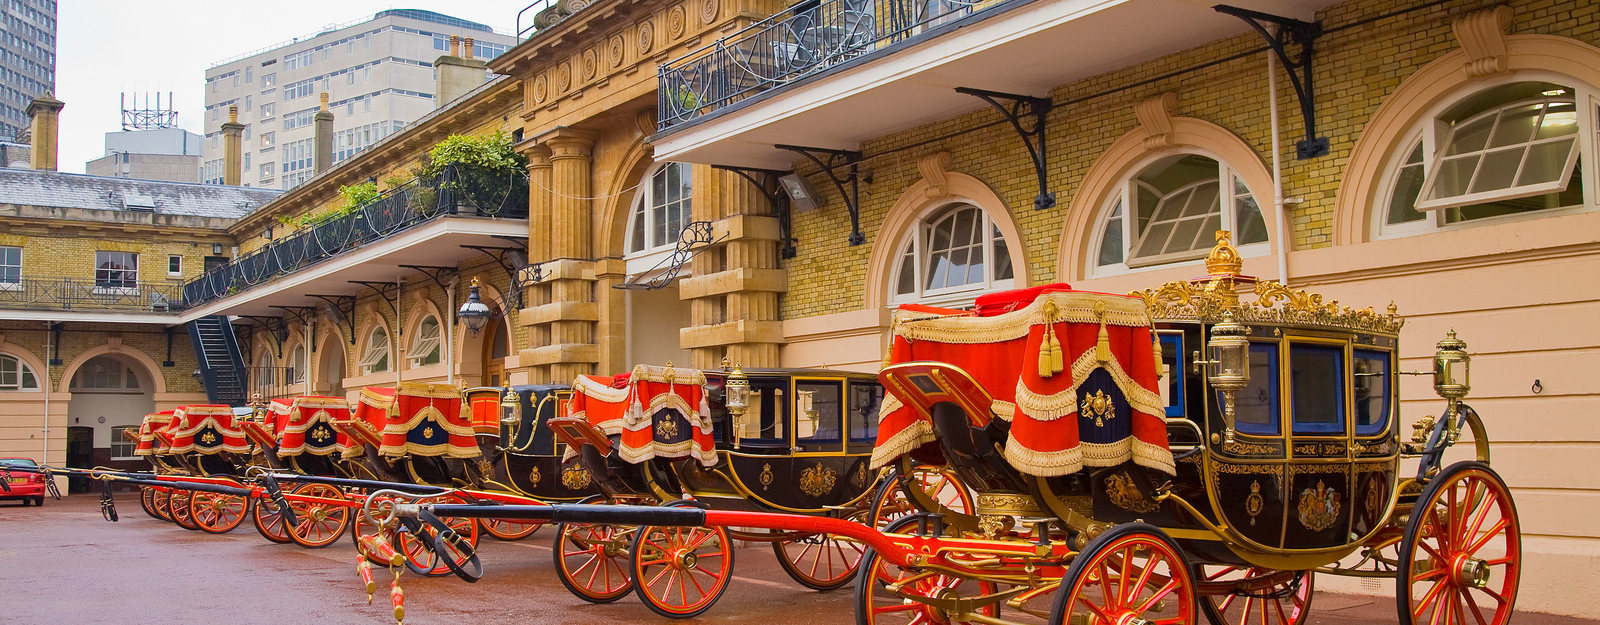 Coaches at the Royal Mews. Photographer: Pawel Libera